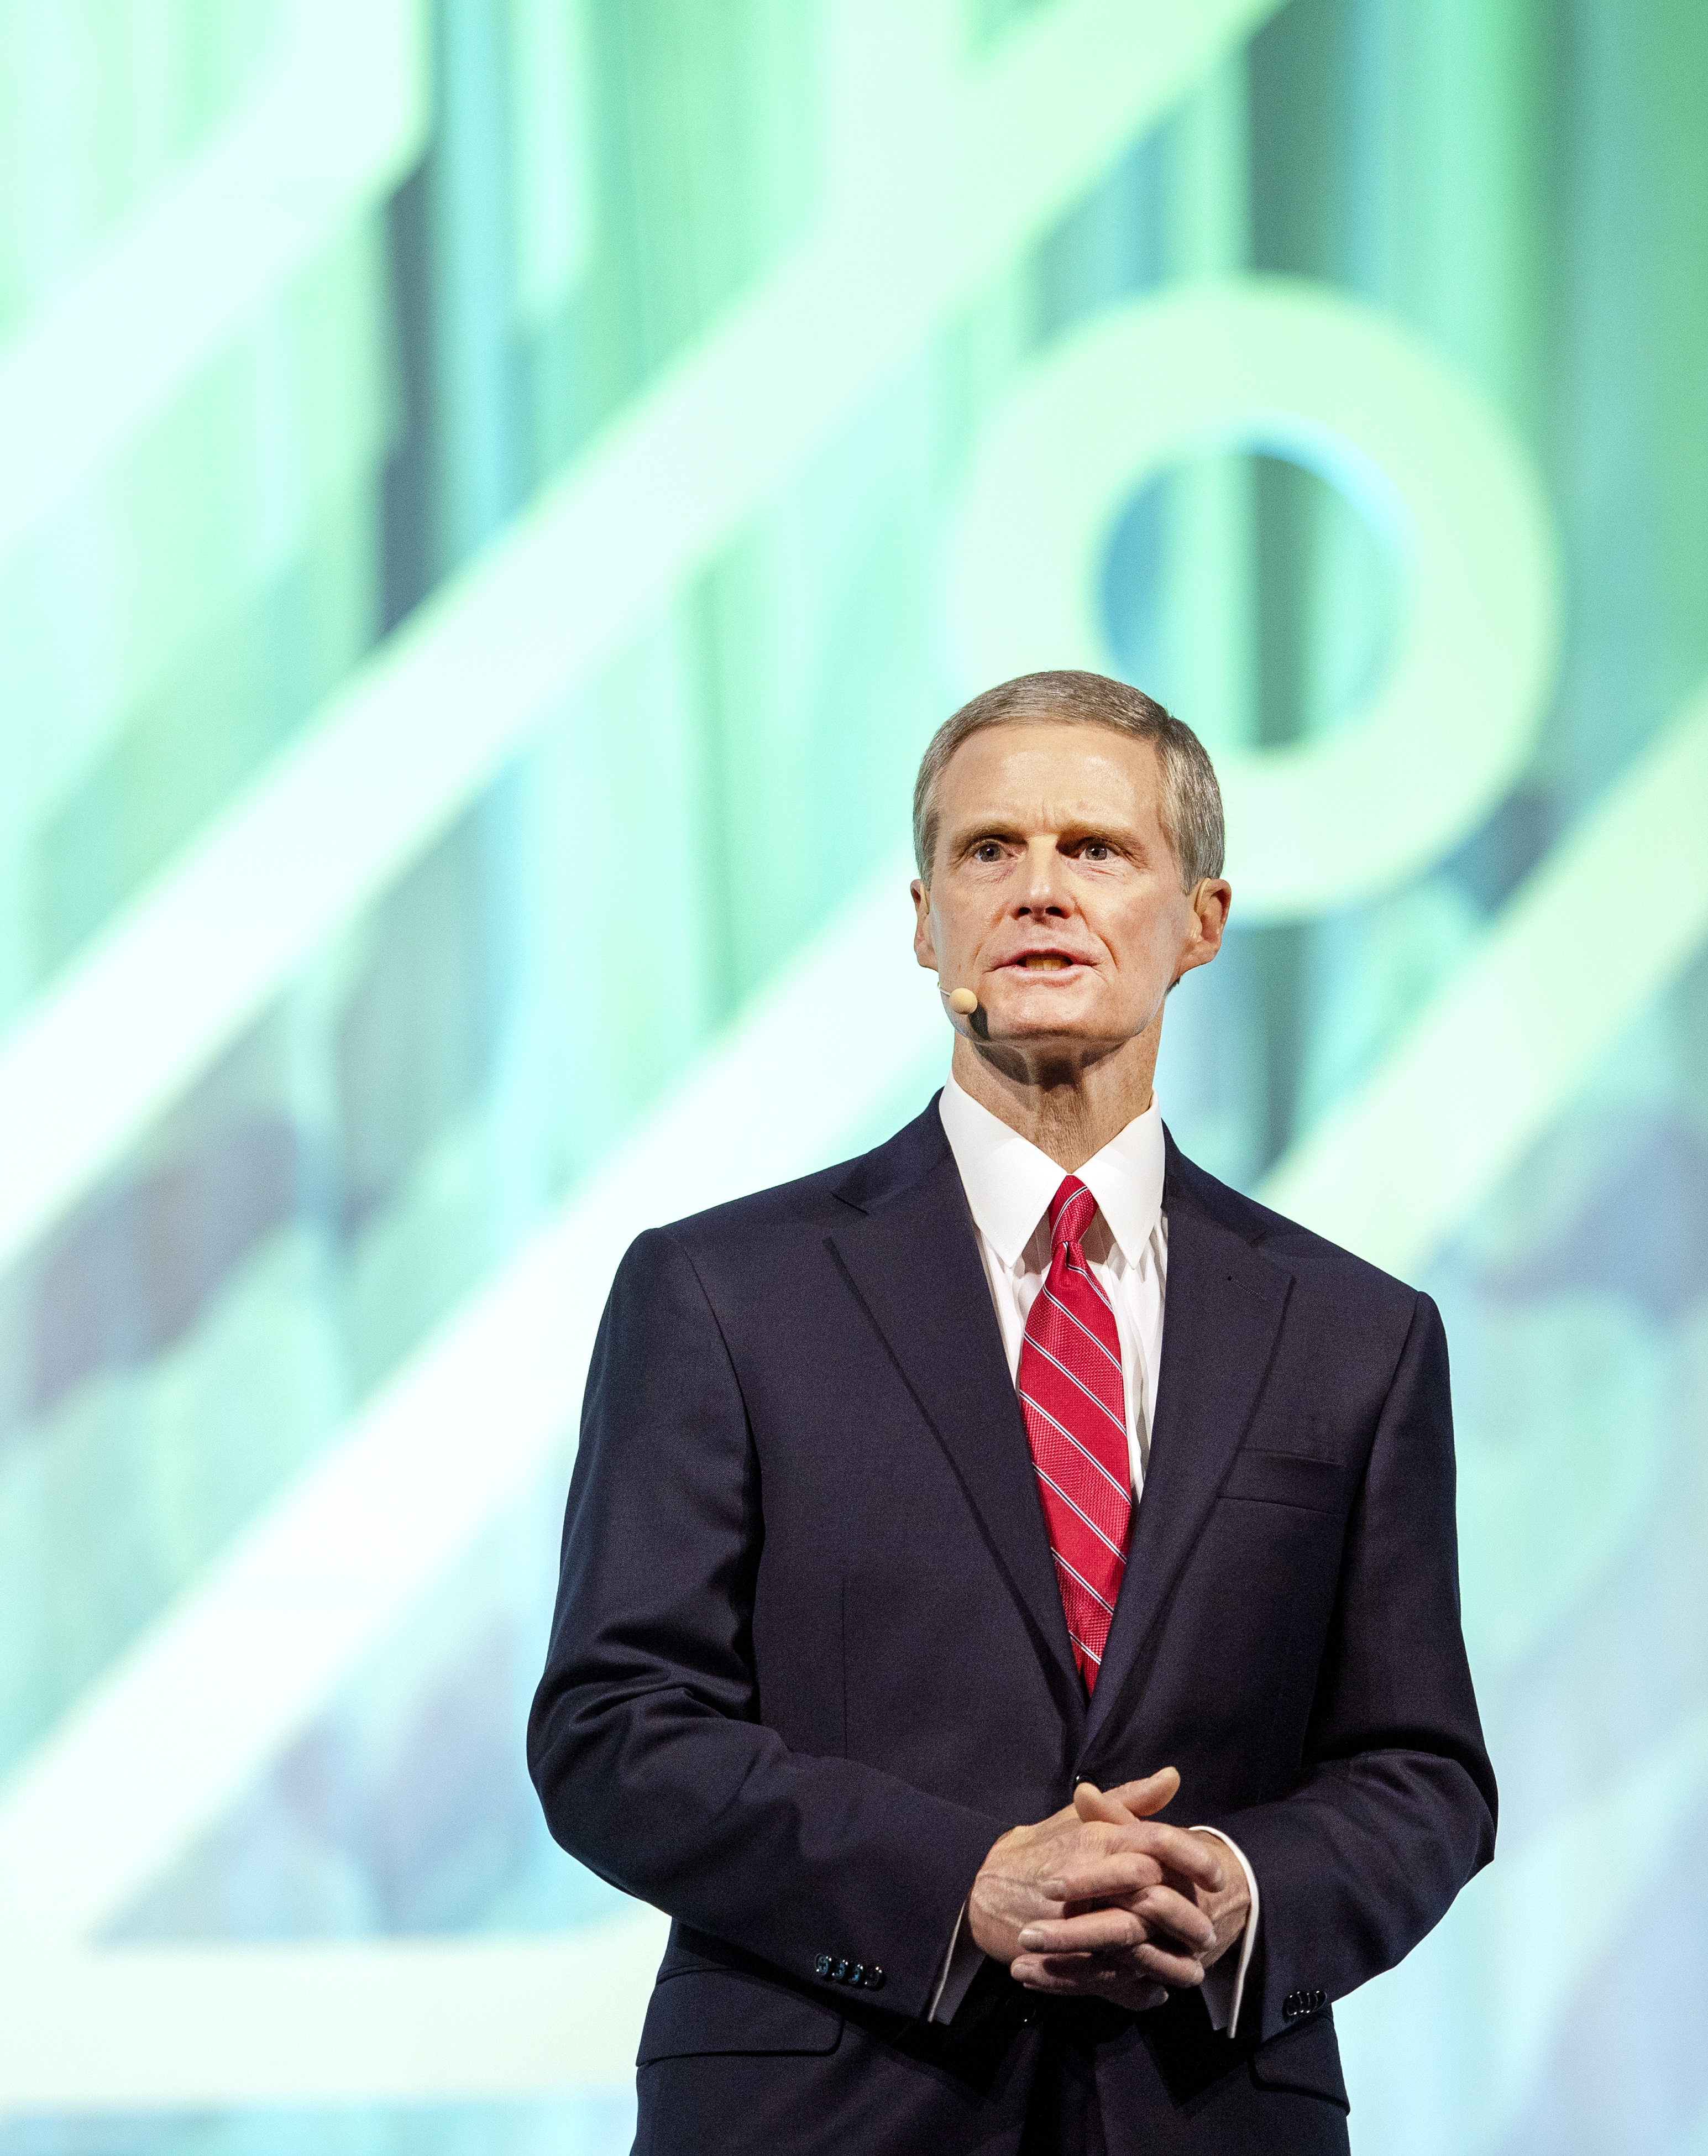 Elder David A. Bednar of the Quorum of the Twelve Apostles of The Church of Jesus Christ of Latter-day Saints speaks to the crowd prior to announcing a $2 million donation from the church to the International African American Museum Center for Family History, at Rootstech in Salt Lake City on Wednesday, Feb. 27, 2019.